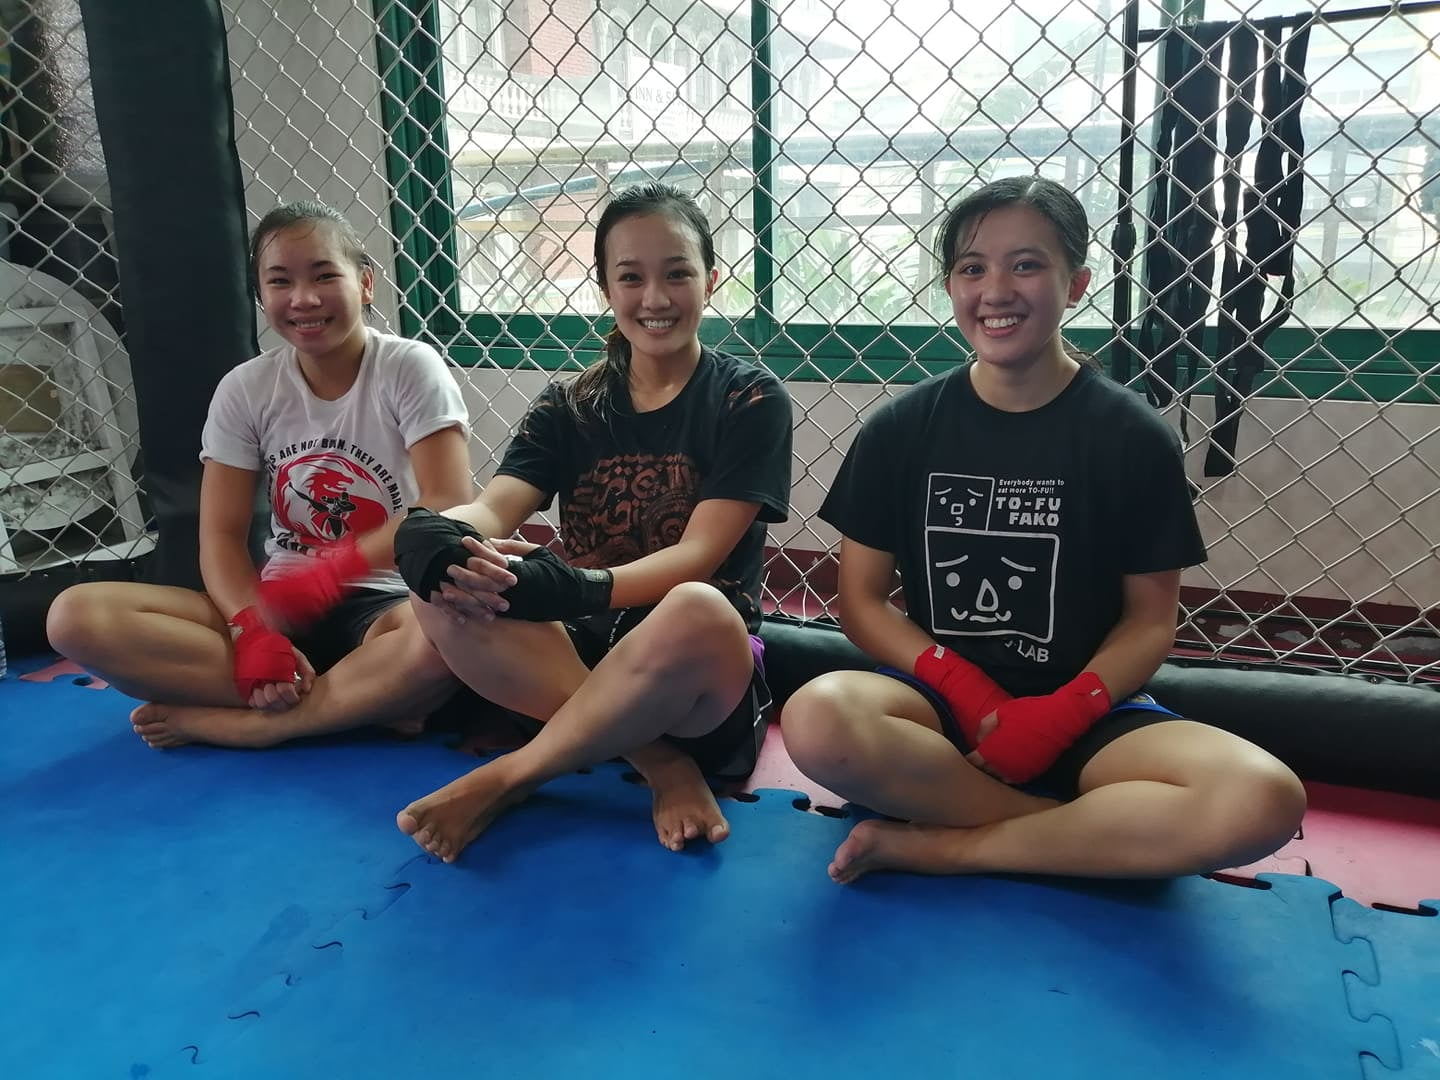 Strong and Beautiful: These ladies training at Team Lakay shows Women Empowerment!